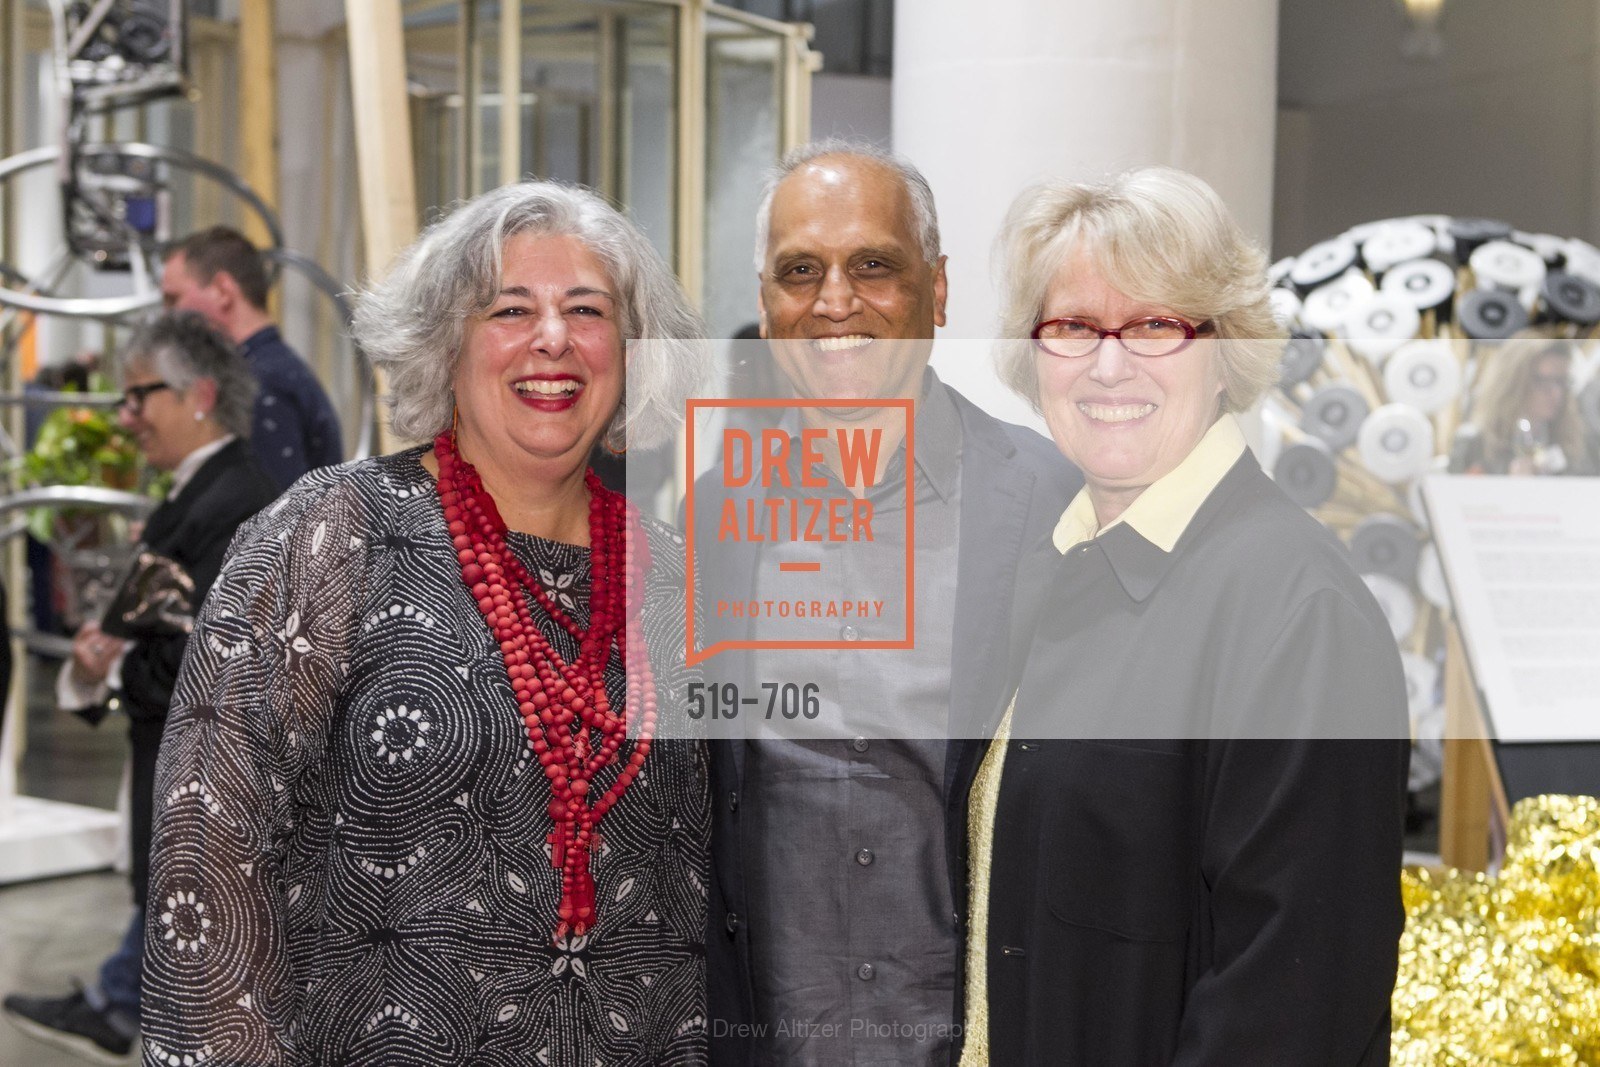 JoAnn Edwards, Zahid Sardar, Agnes Bourne, Exhibit Opening at the MUSEUM OF CRAFT AND DESIGN - Hands Off: New Dutch Design at the Confluence of Technology & Craft, US, May 7th, 2015,Drew Altizer, Drew Altizer Photography, full-service agency, private events, San Francisco photographer, photographer california